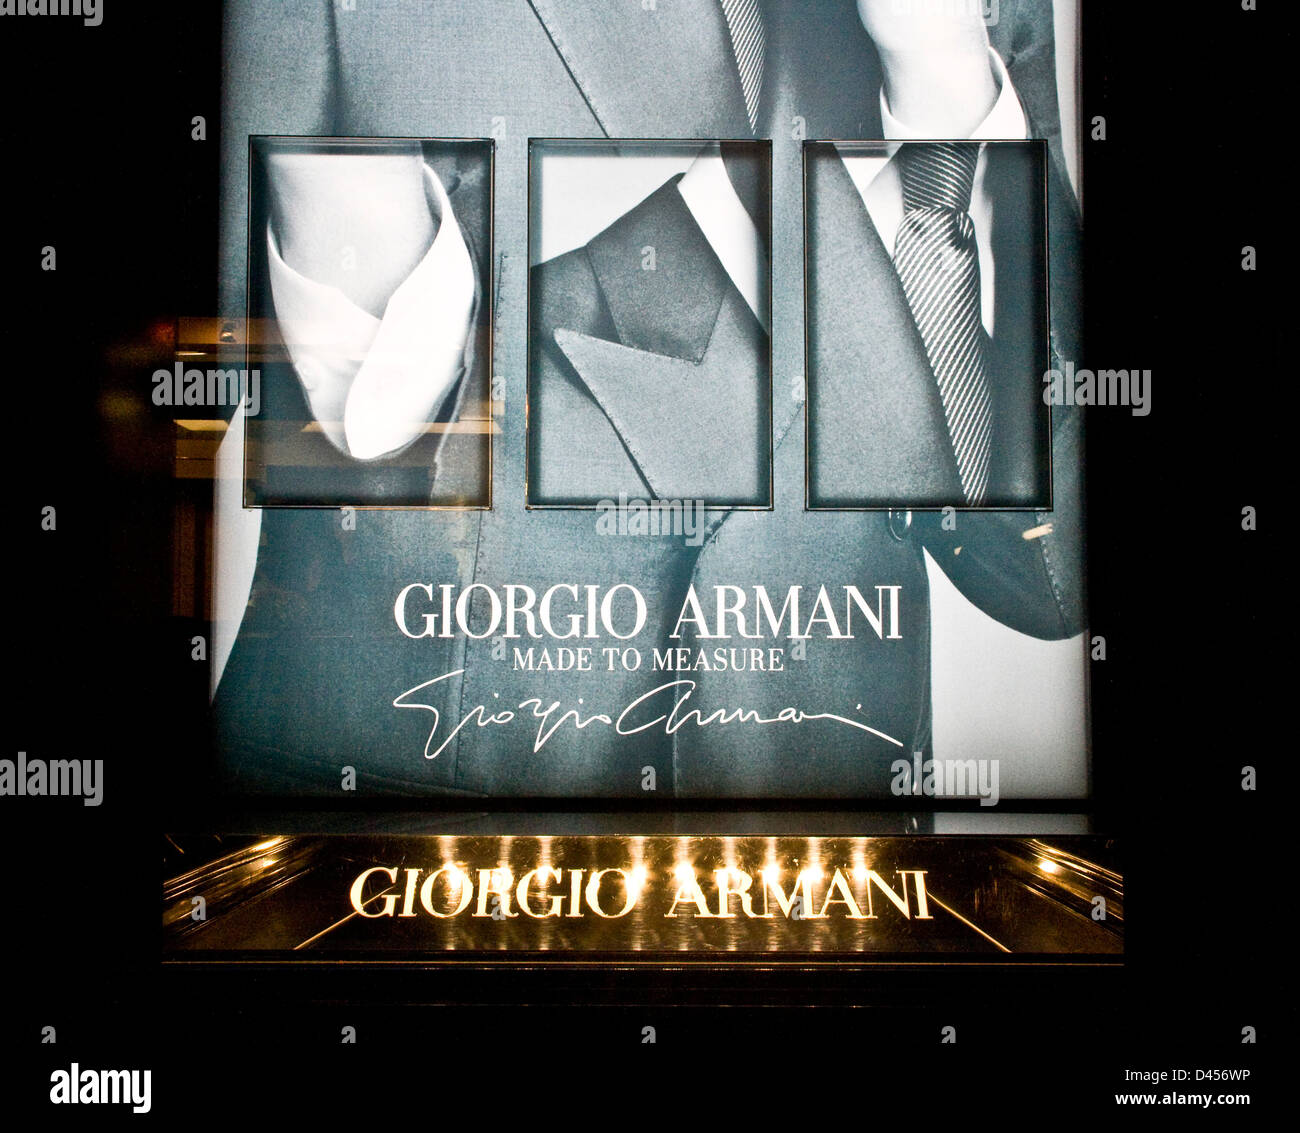 giorgio armani designer boutique made to measure advert. Black Bedroom Furniture Sets. Home Design Ideas